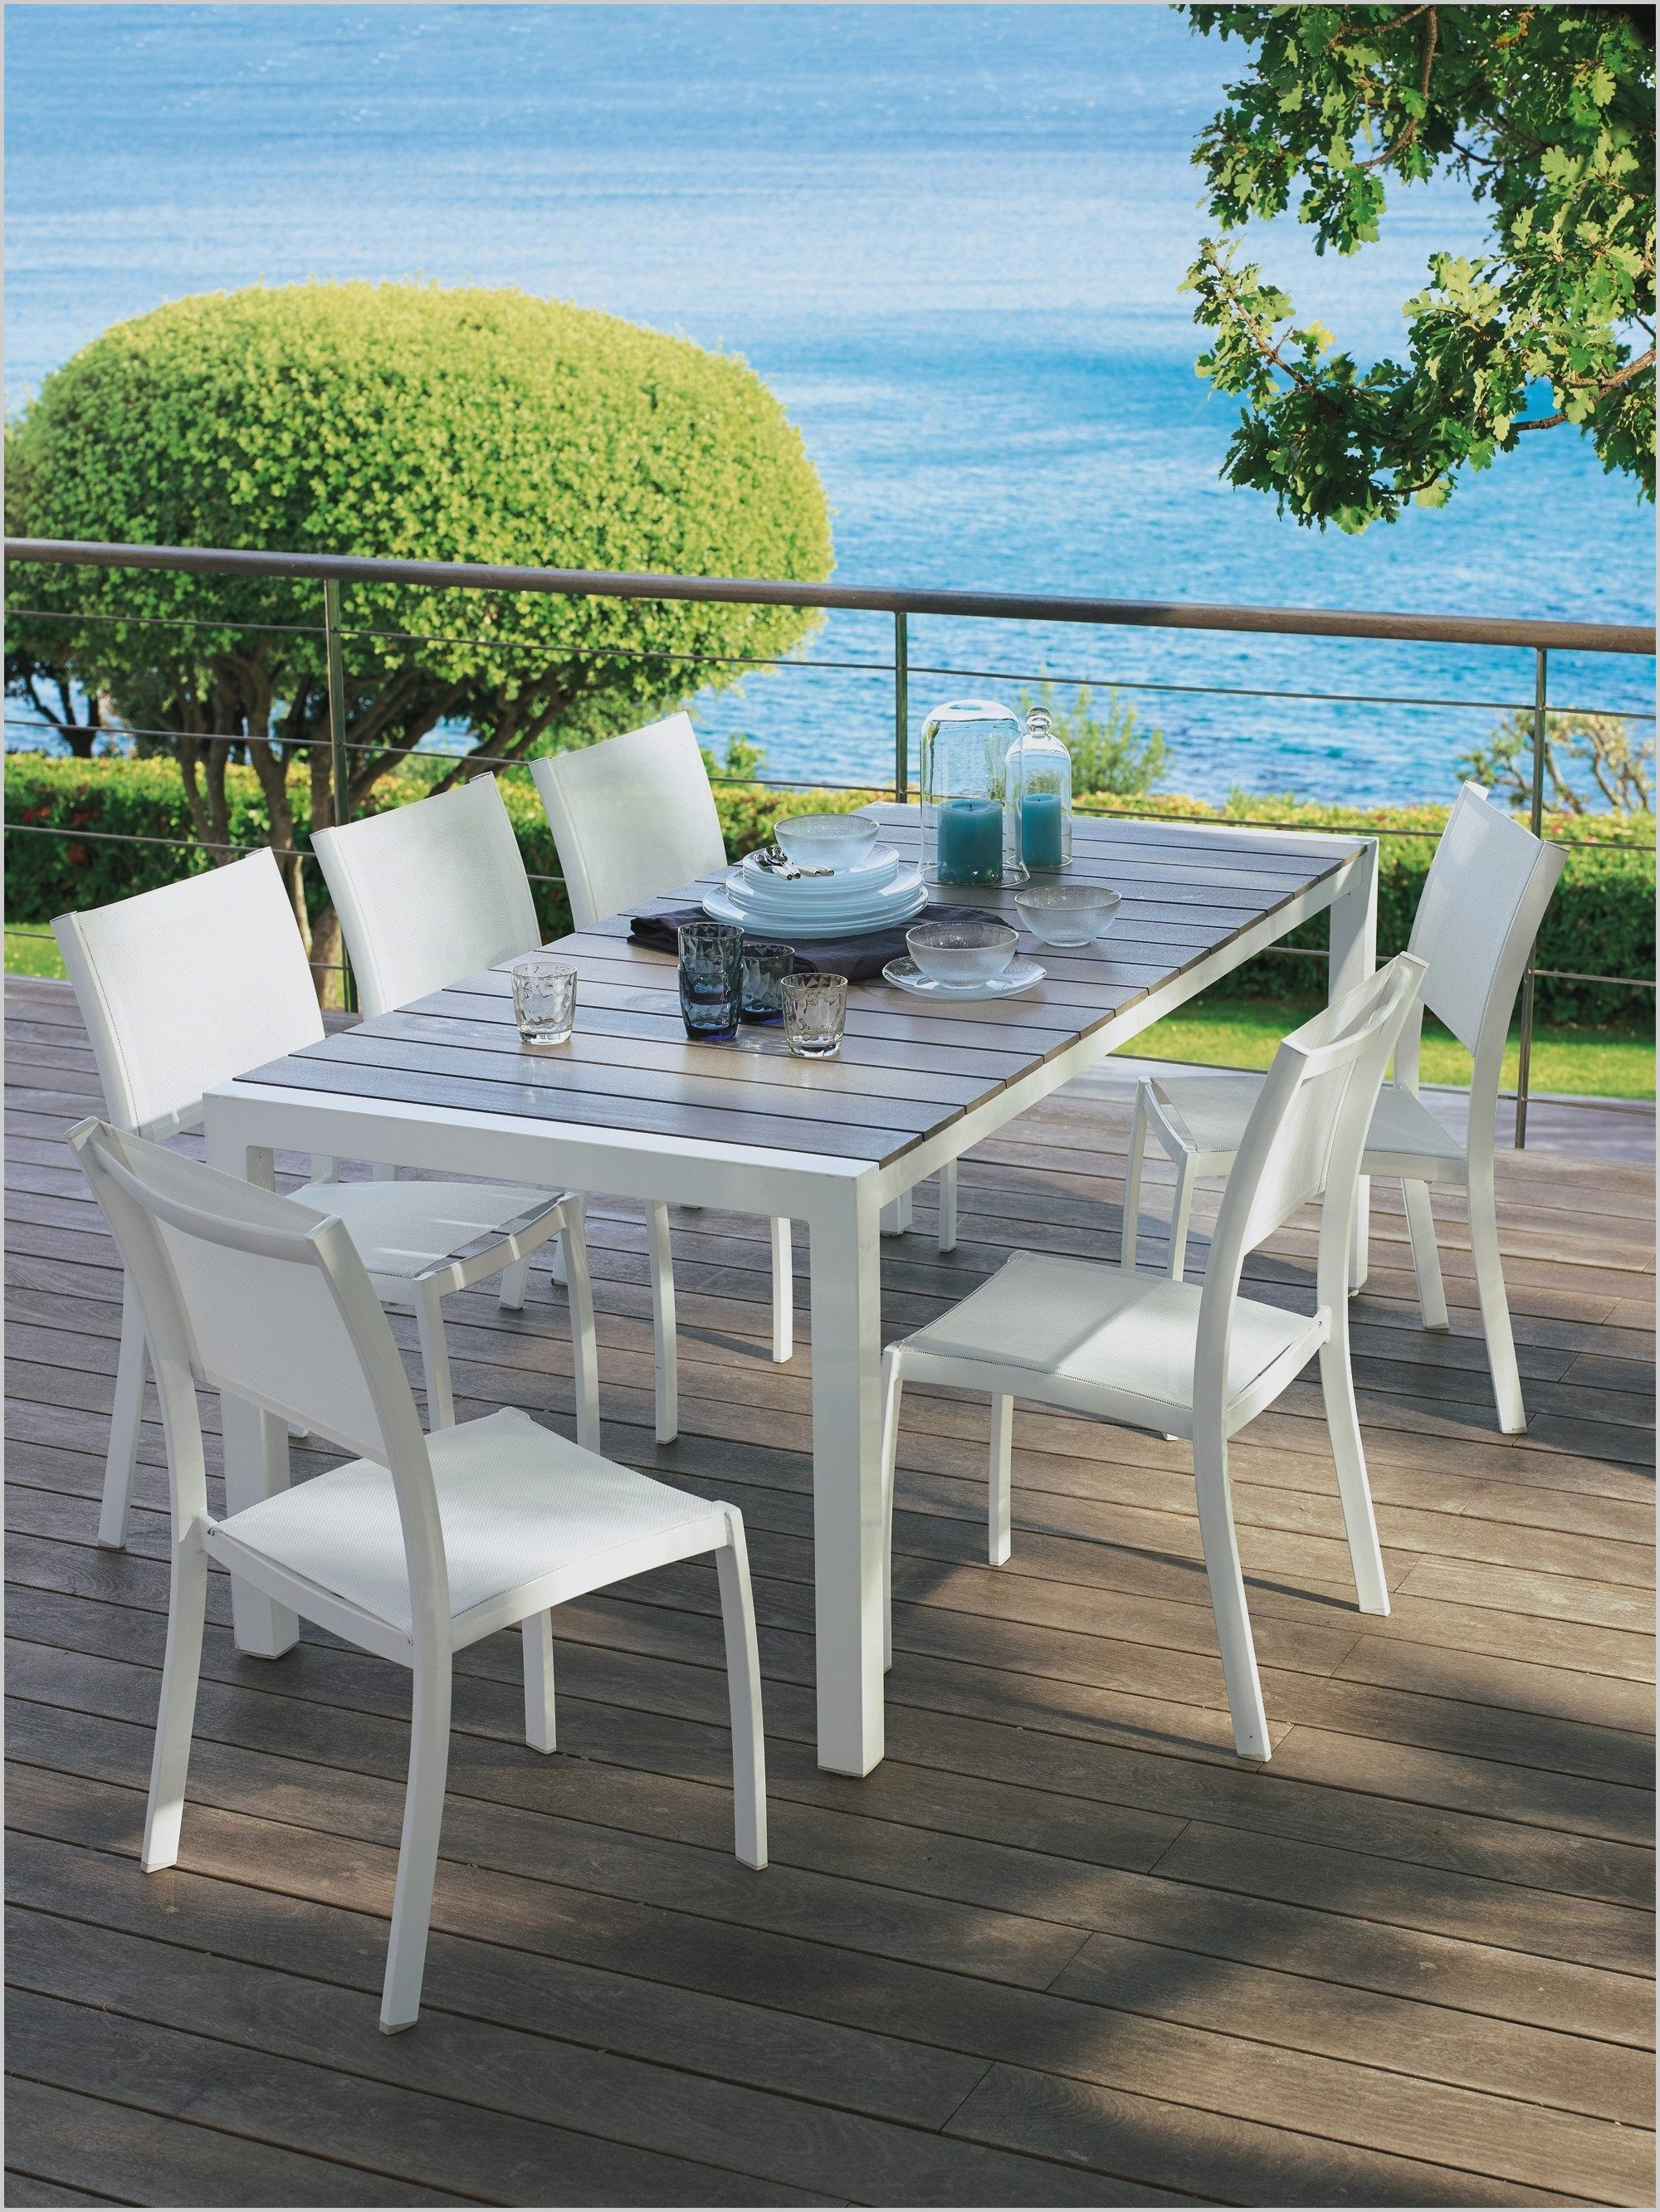 Leclerc Table Pliante Leclerc Table Pliante Leclerc Table